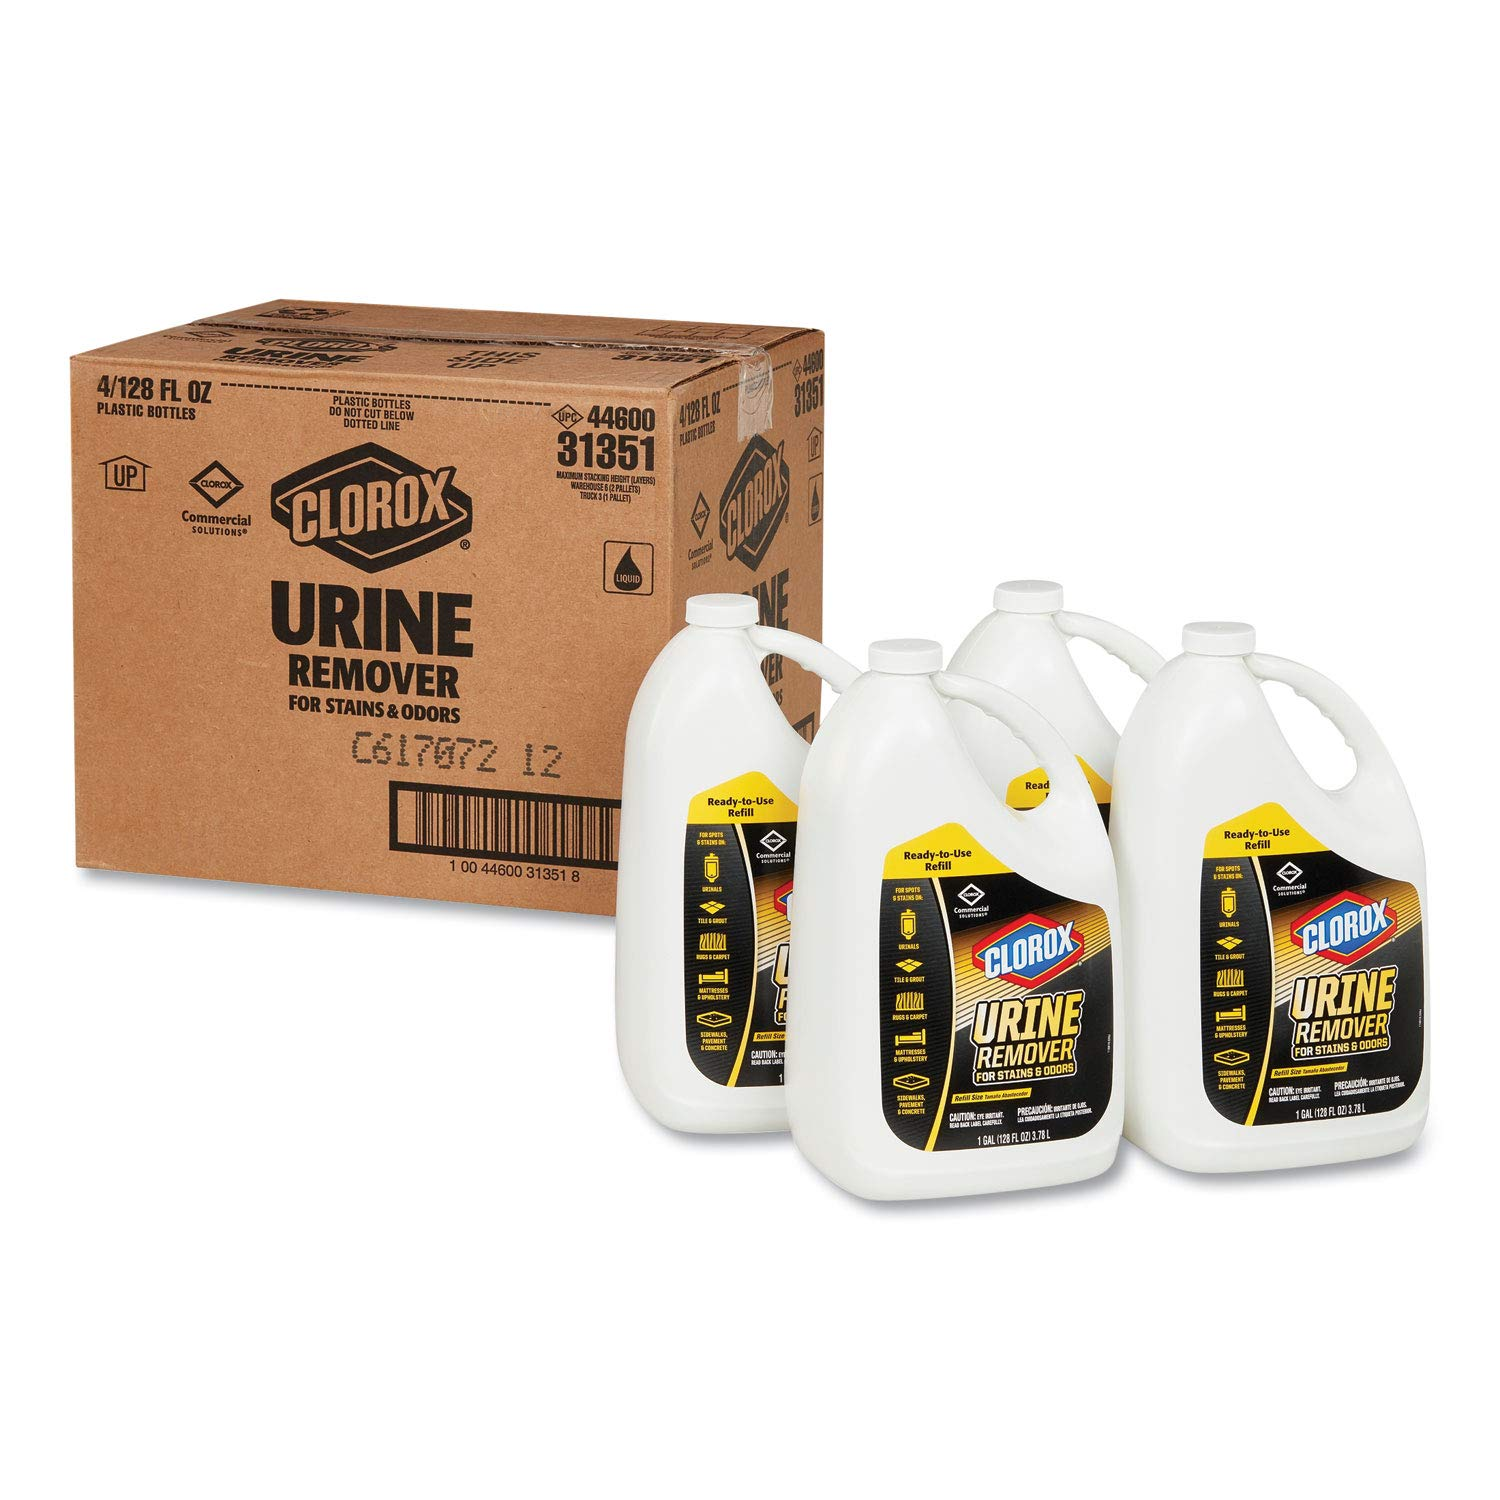 Clorox 31351CT Urine Remover, 1 Gal Bottle, Clean Floral Scent, 4/carton